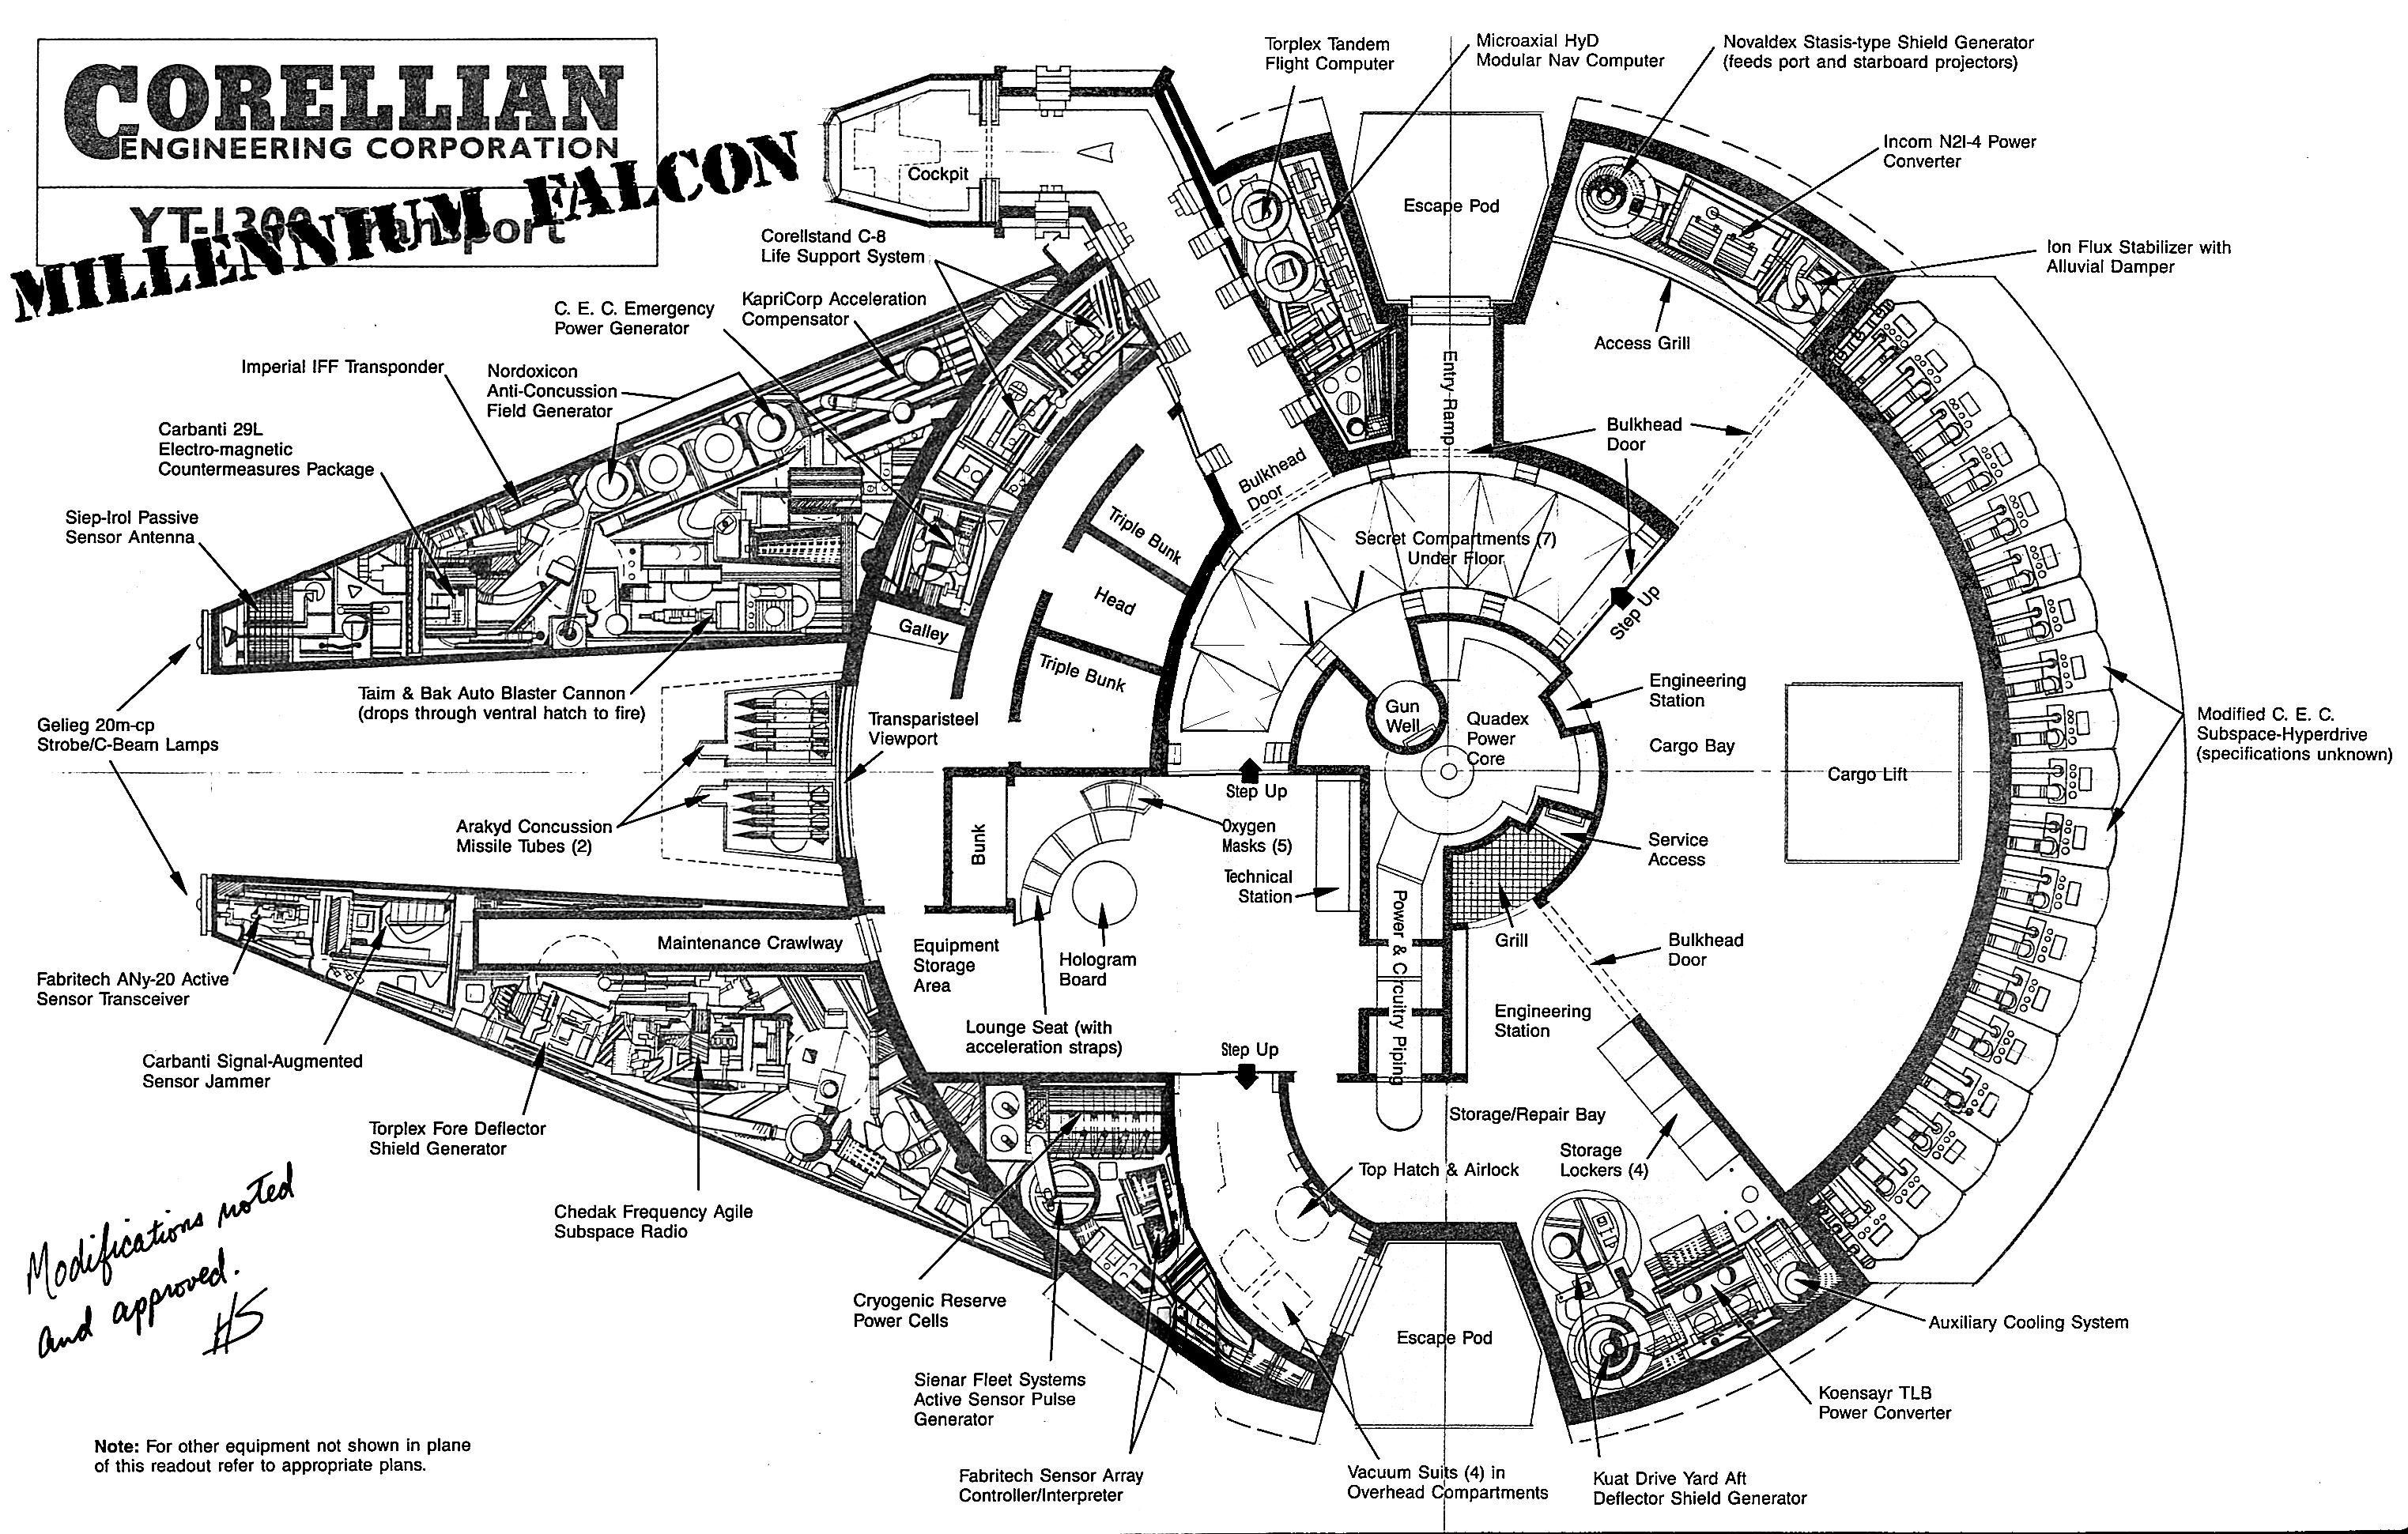 Plan d taill du falcon millennium for Interieur faucon millenium